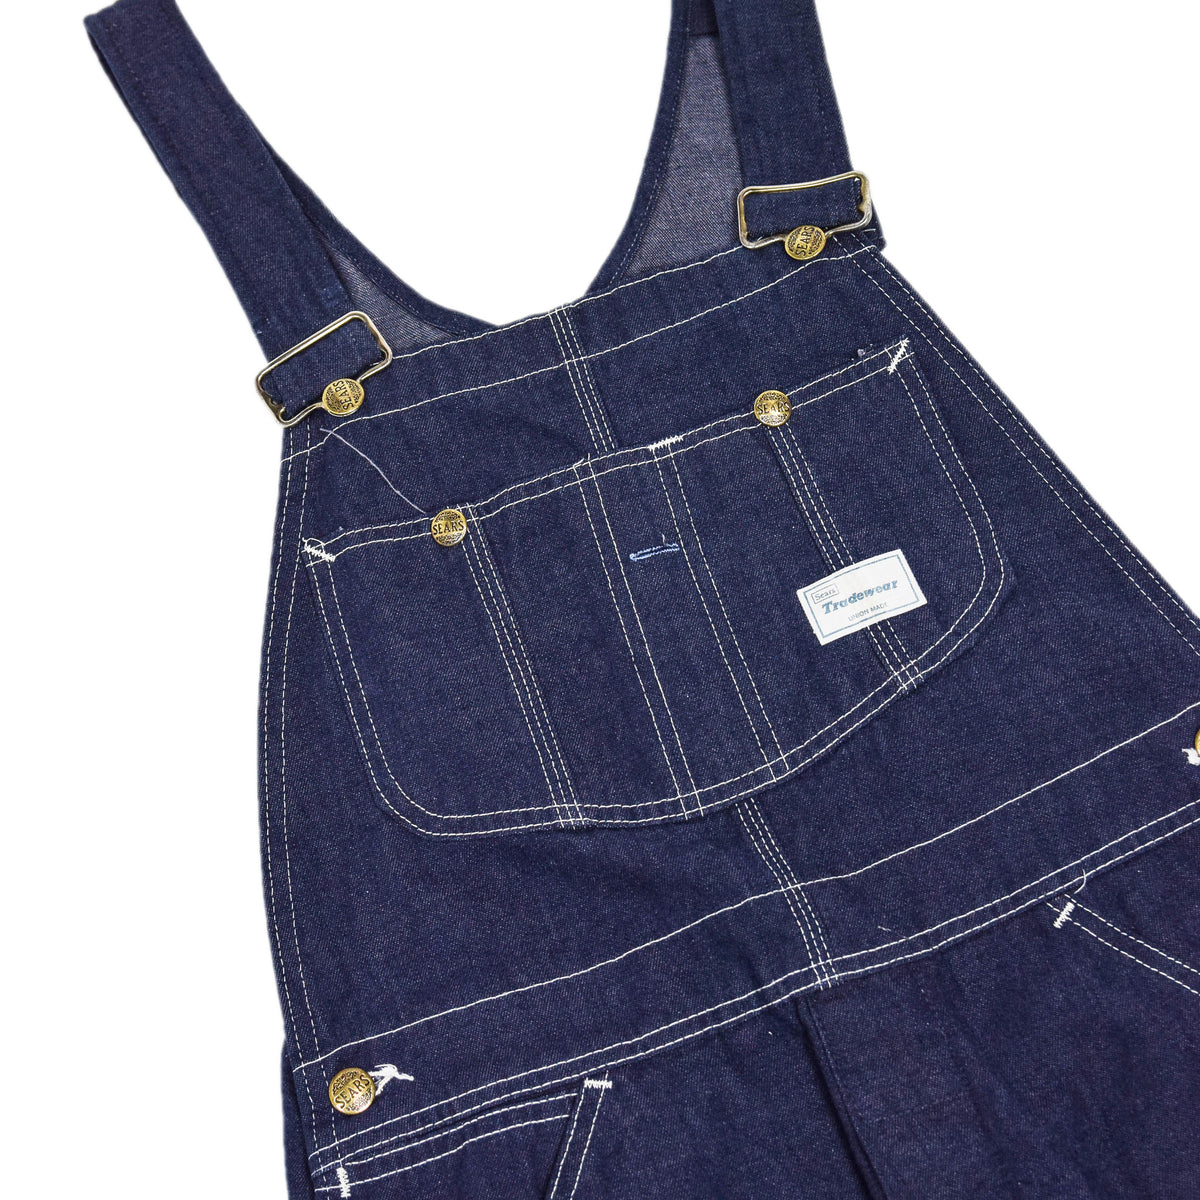 Vintage Sears Union Made USA Workwear Dungarees Blue Denim Overalls XS CHEST